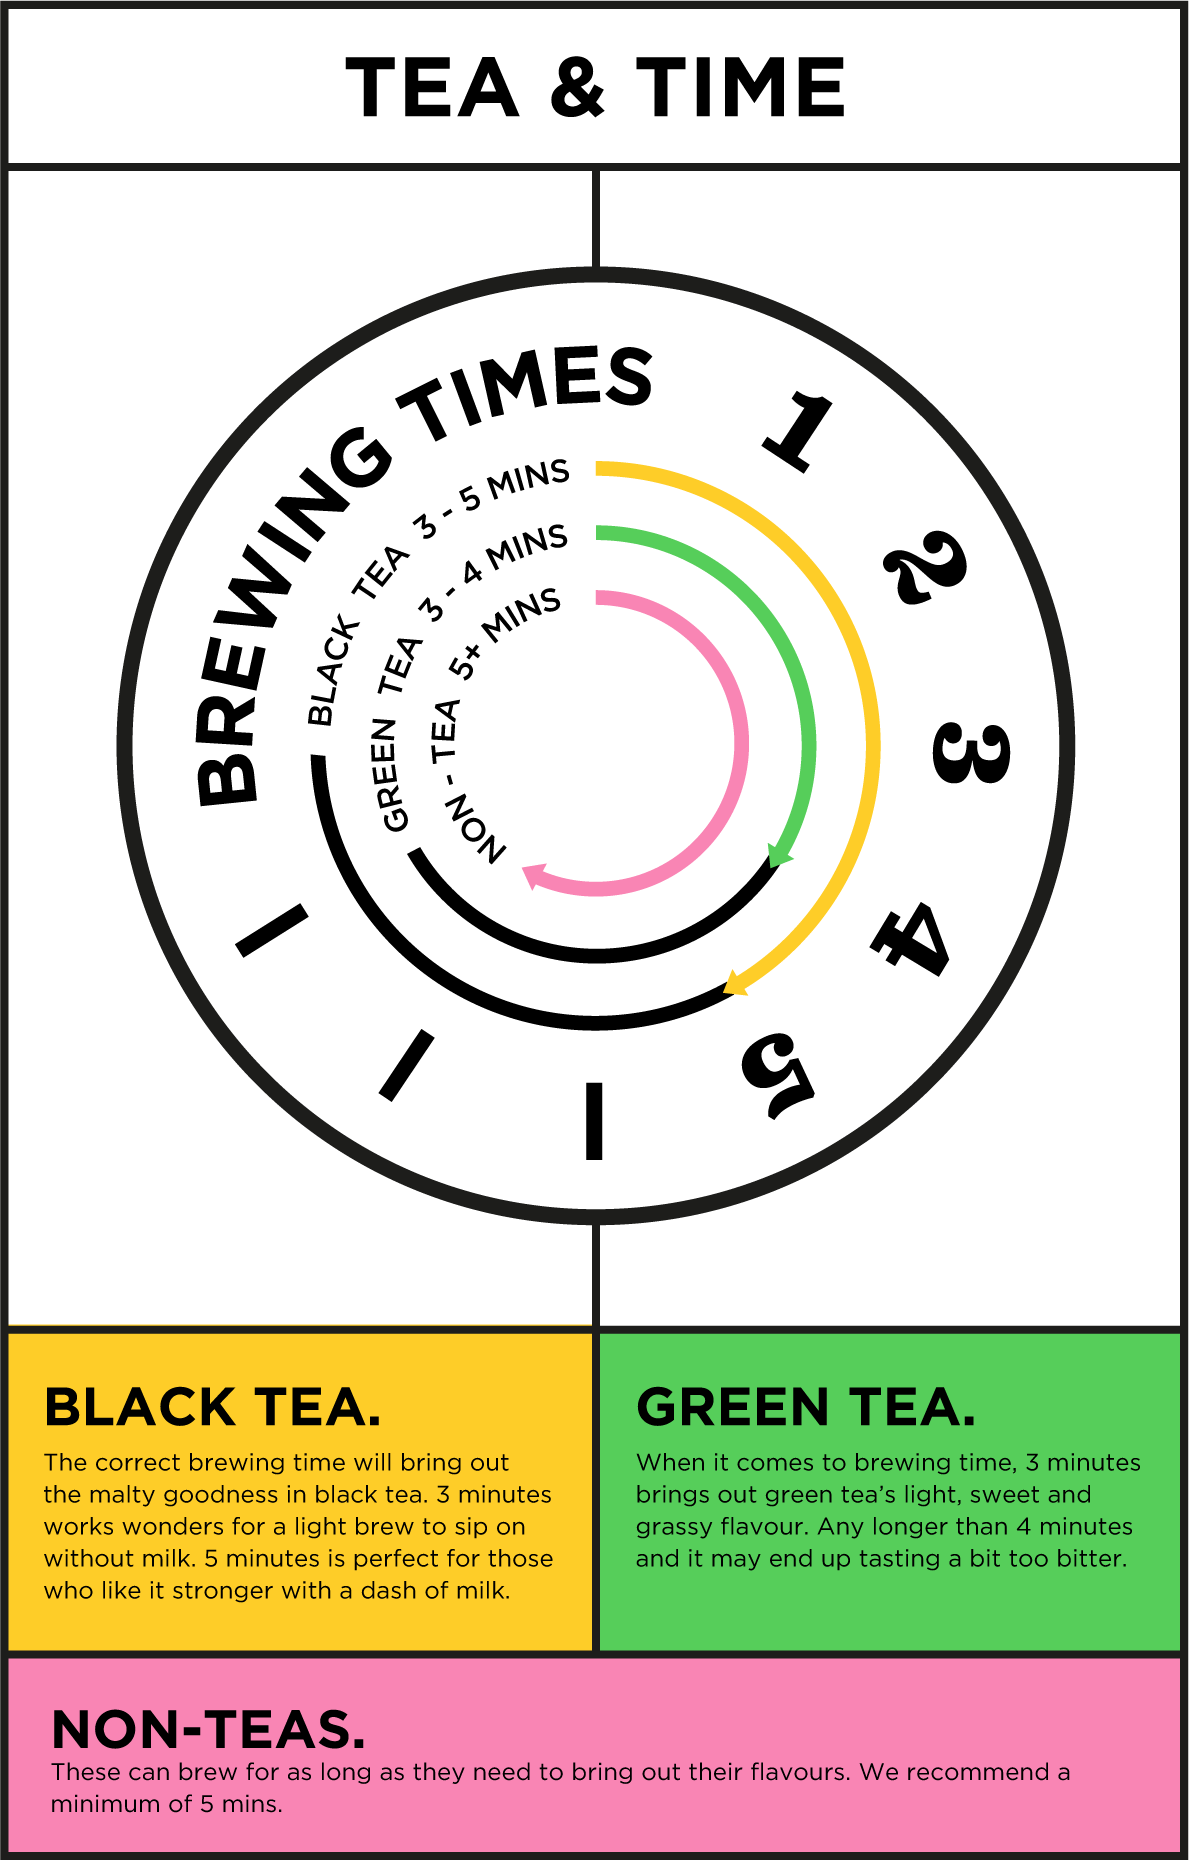 Tea and brewing times